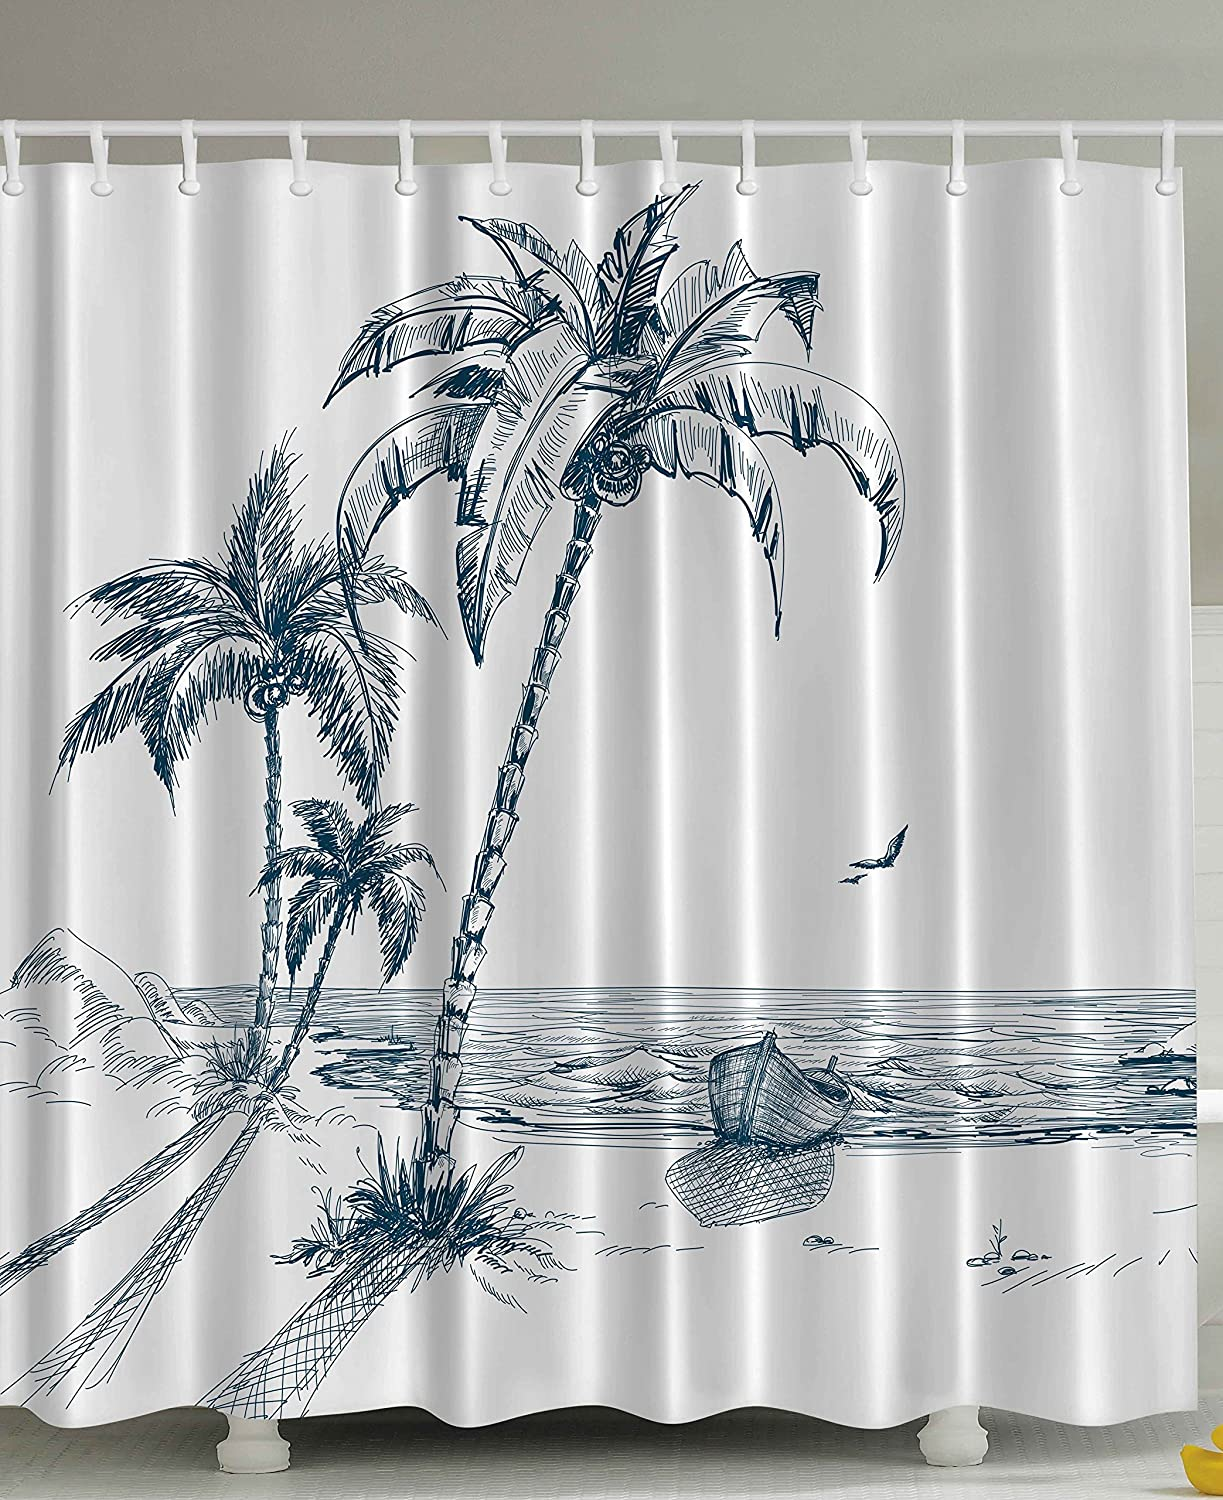 Amazon.com: Ambesonne Nautical Shower Curtain by, Palms Beach ...